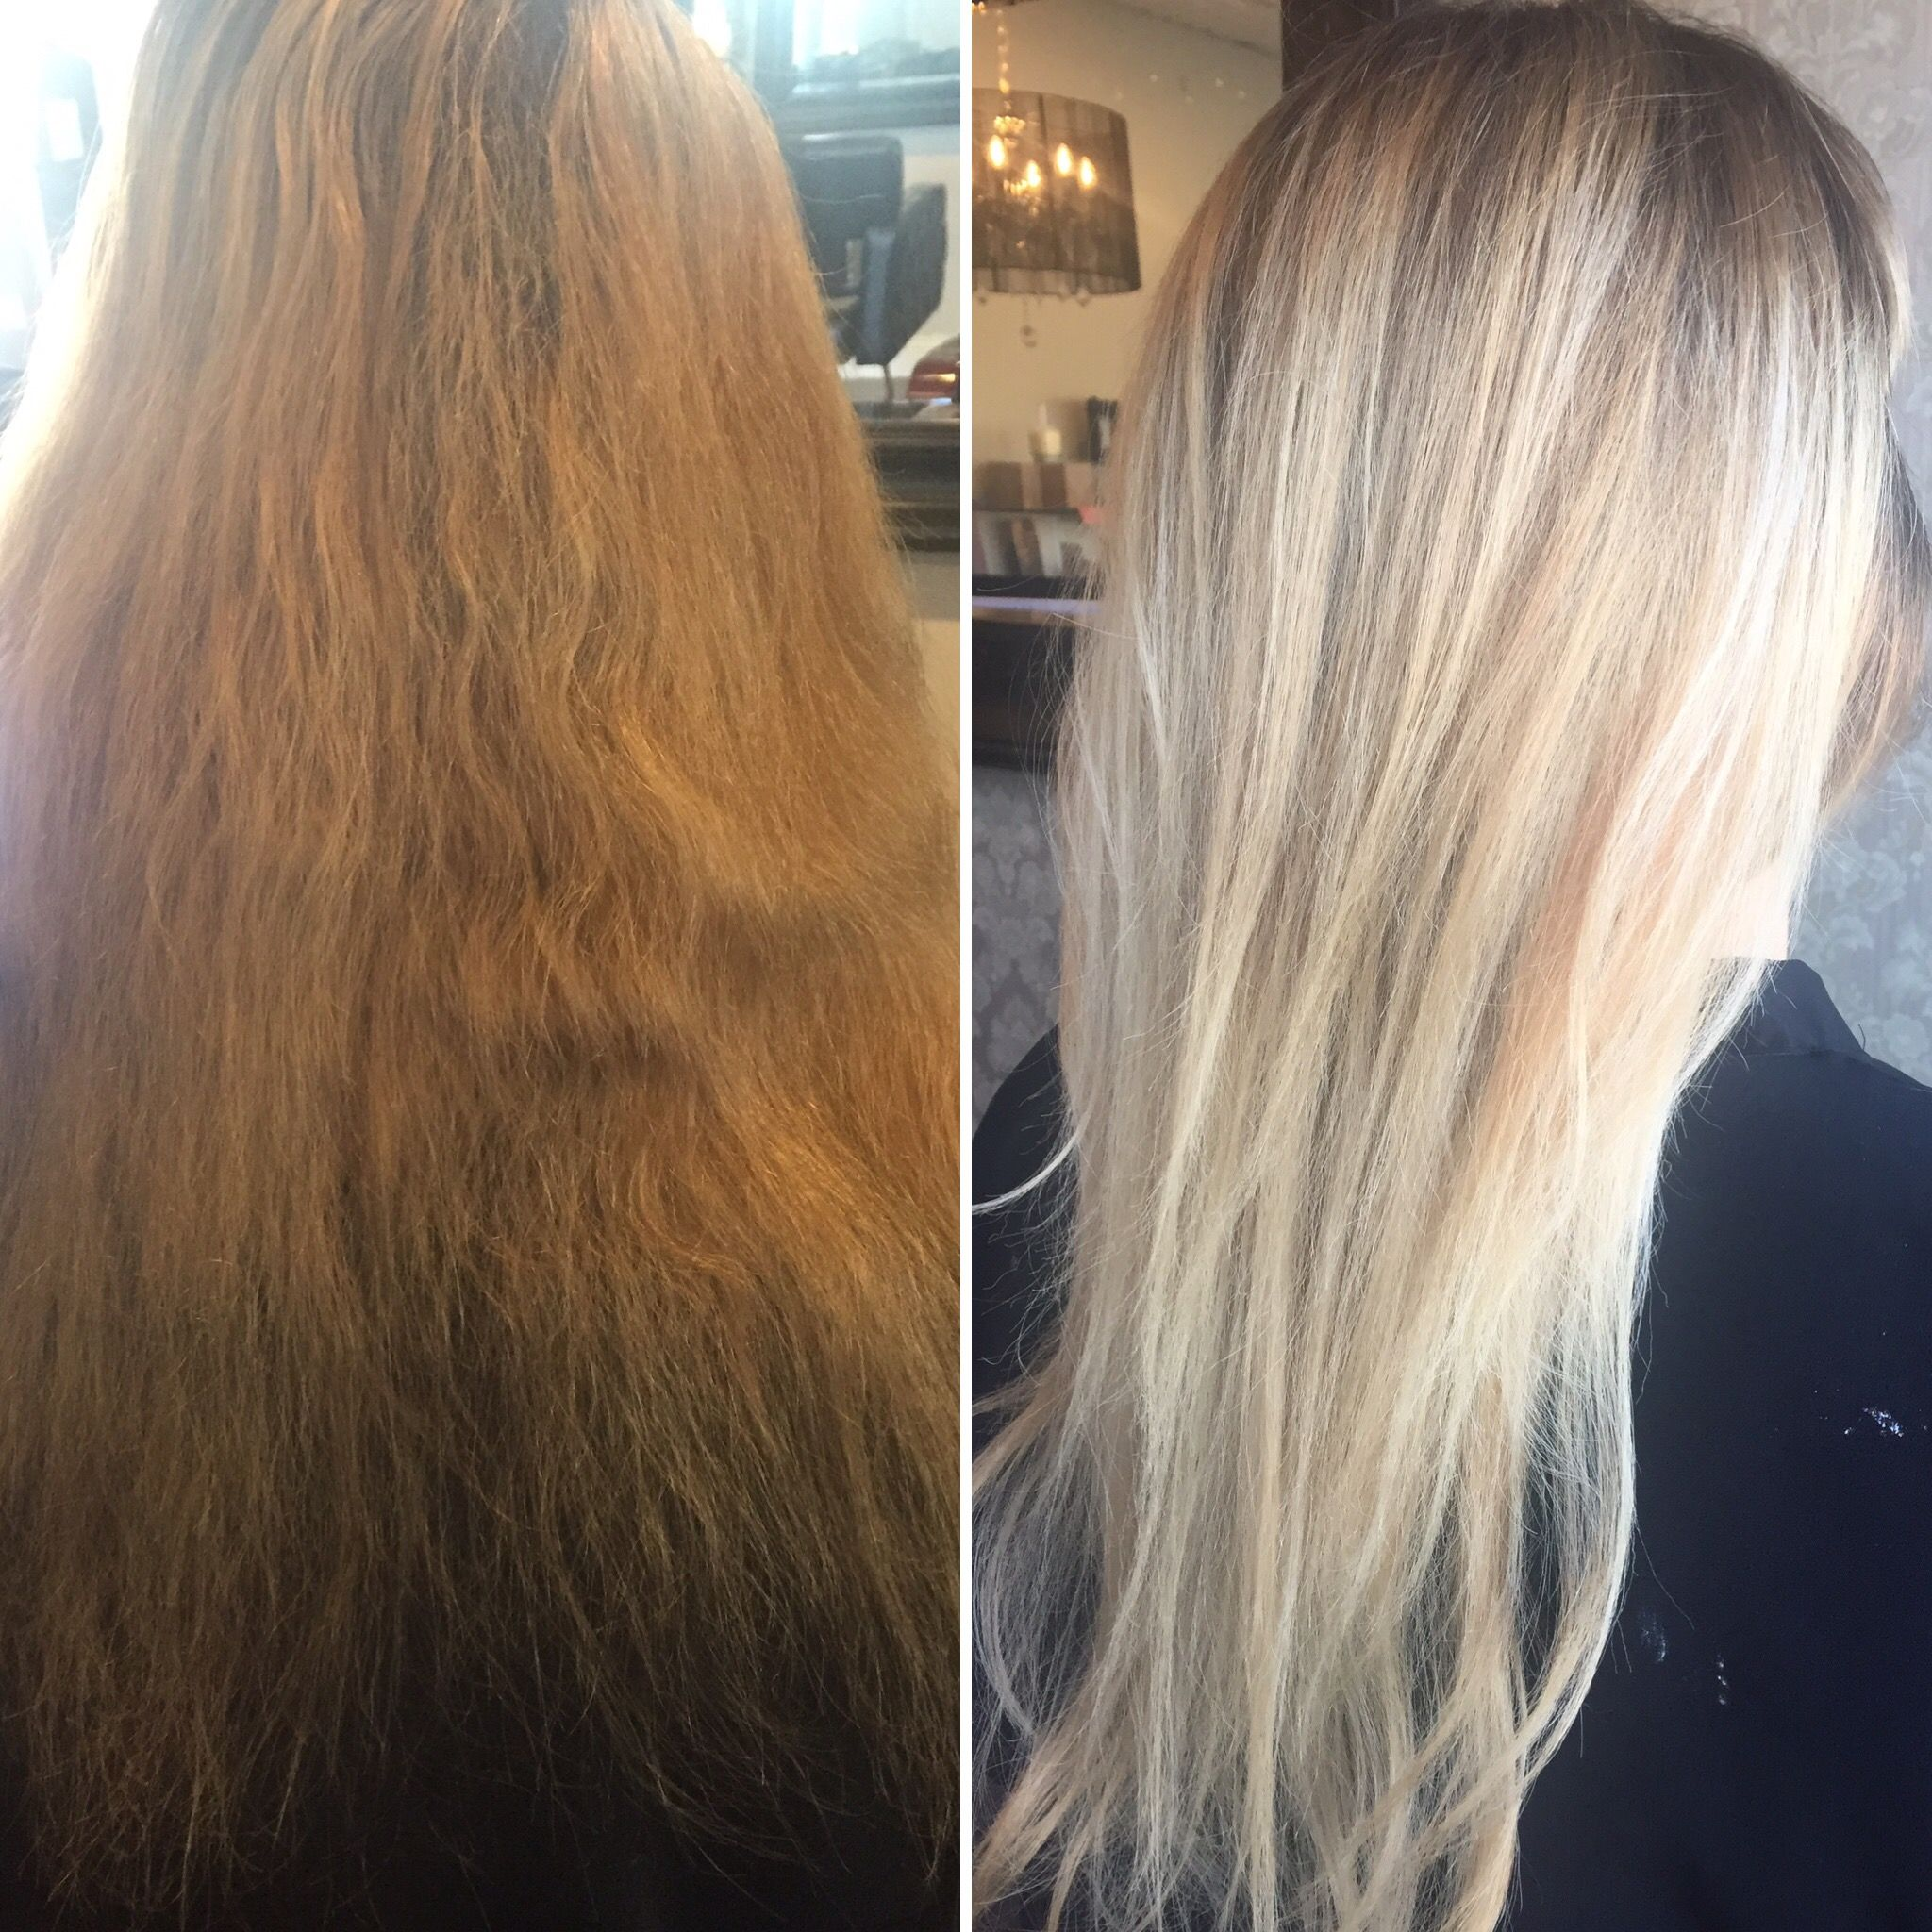 Hair Makeover Before To After Blonde Light Blonde Long Hair